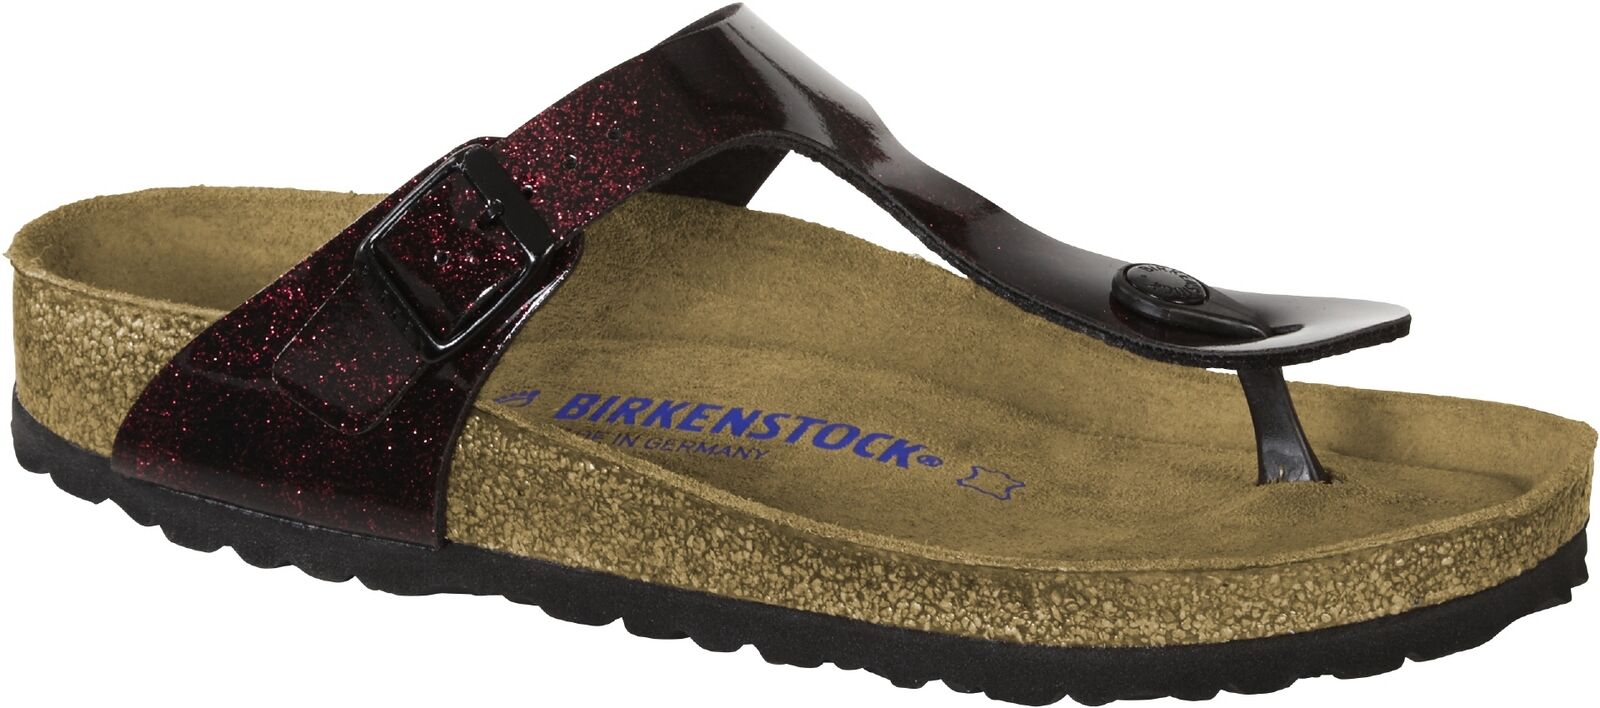 Birkenstock strong Gizeh SFB BF iride strong Birkenstock red bbc6f1